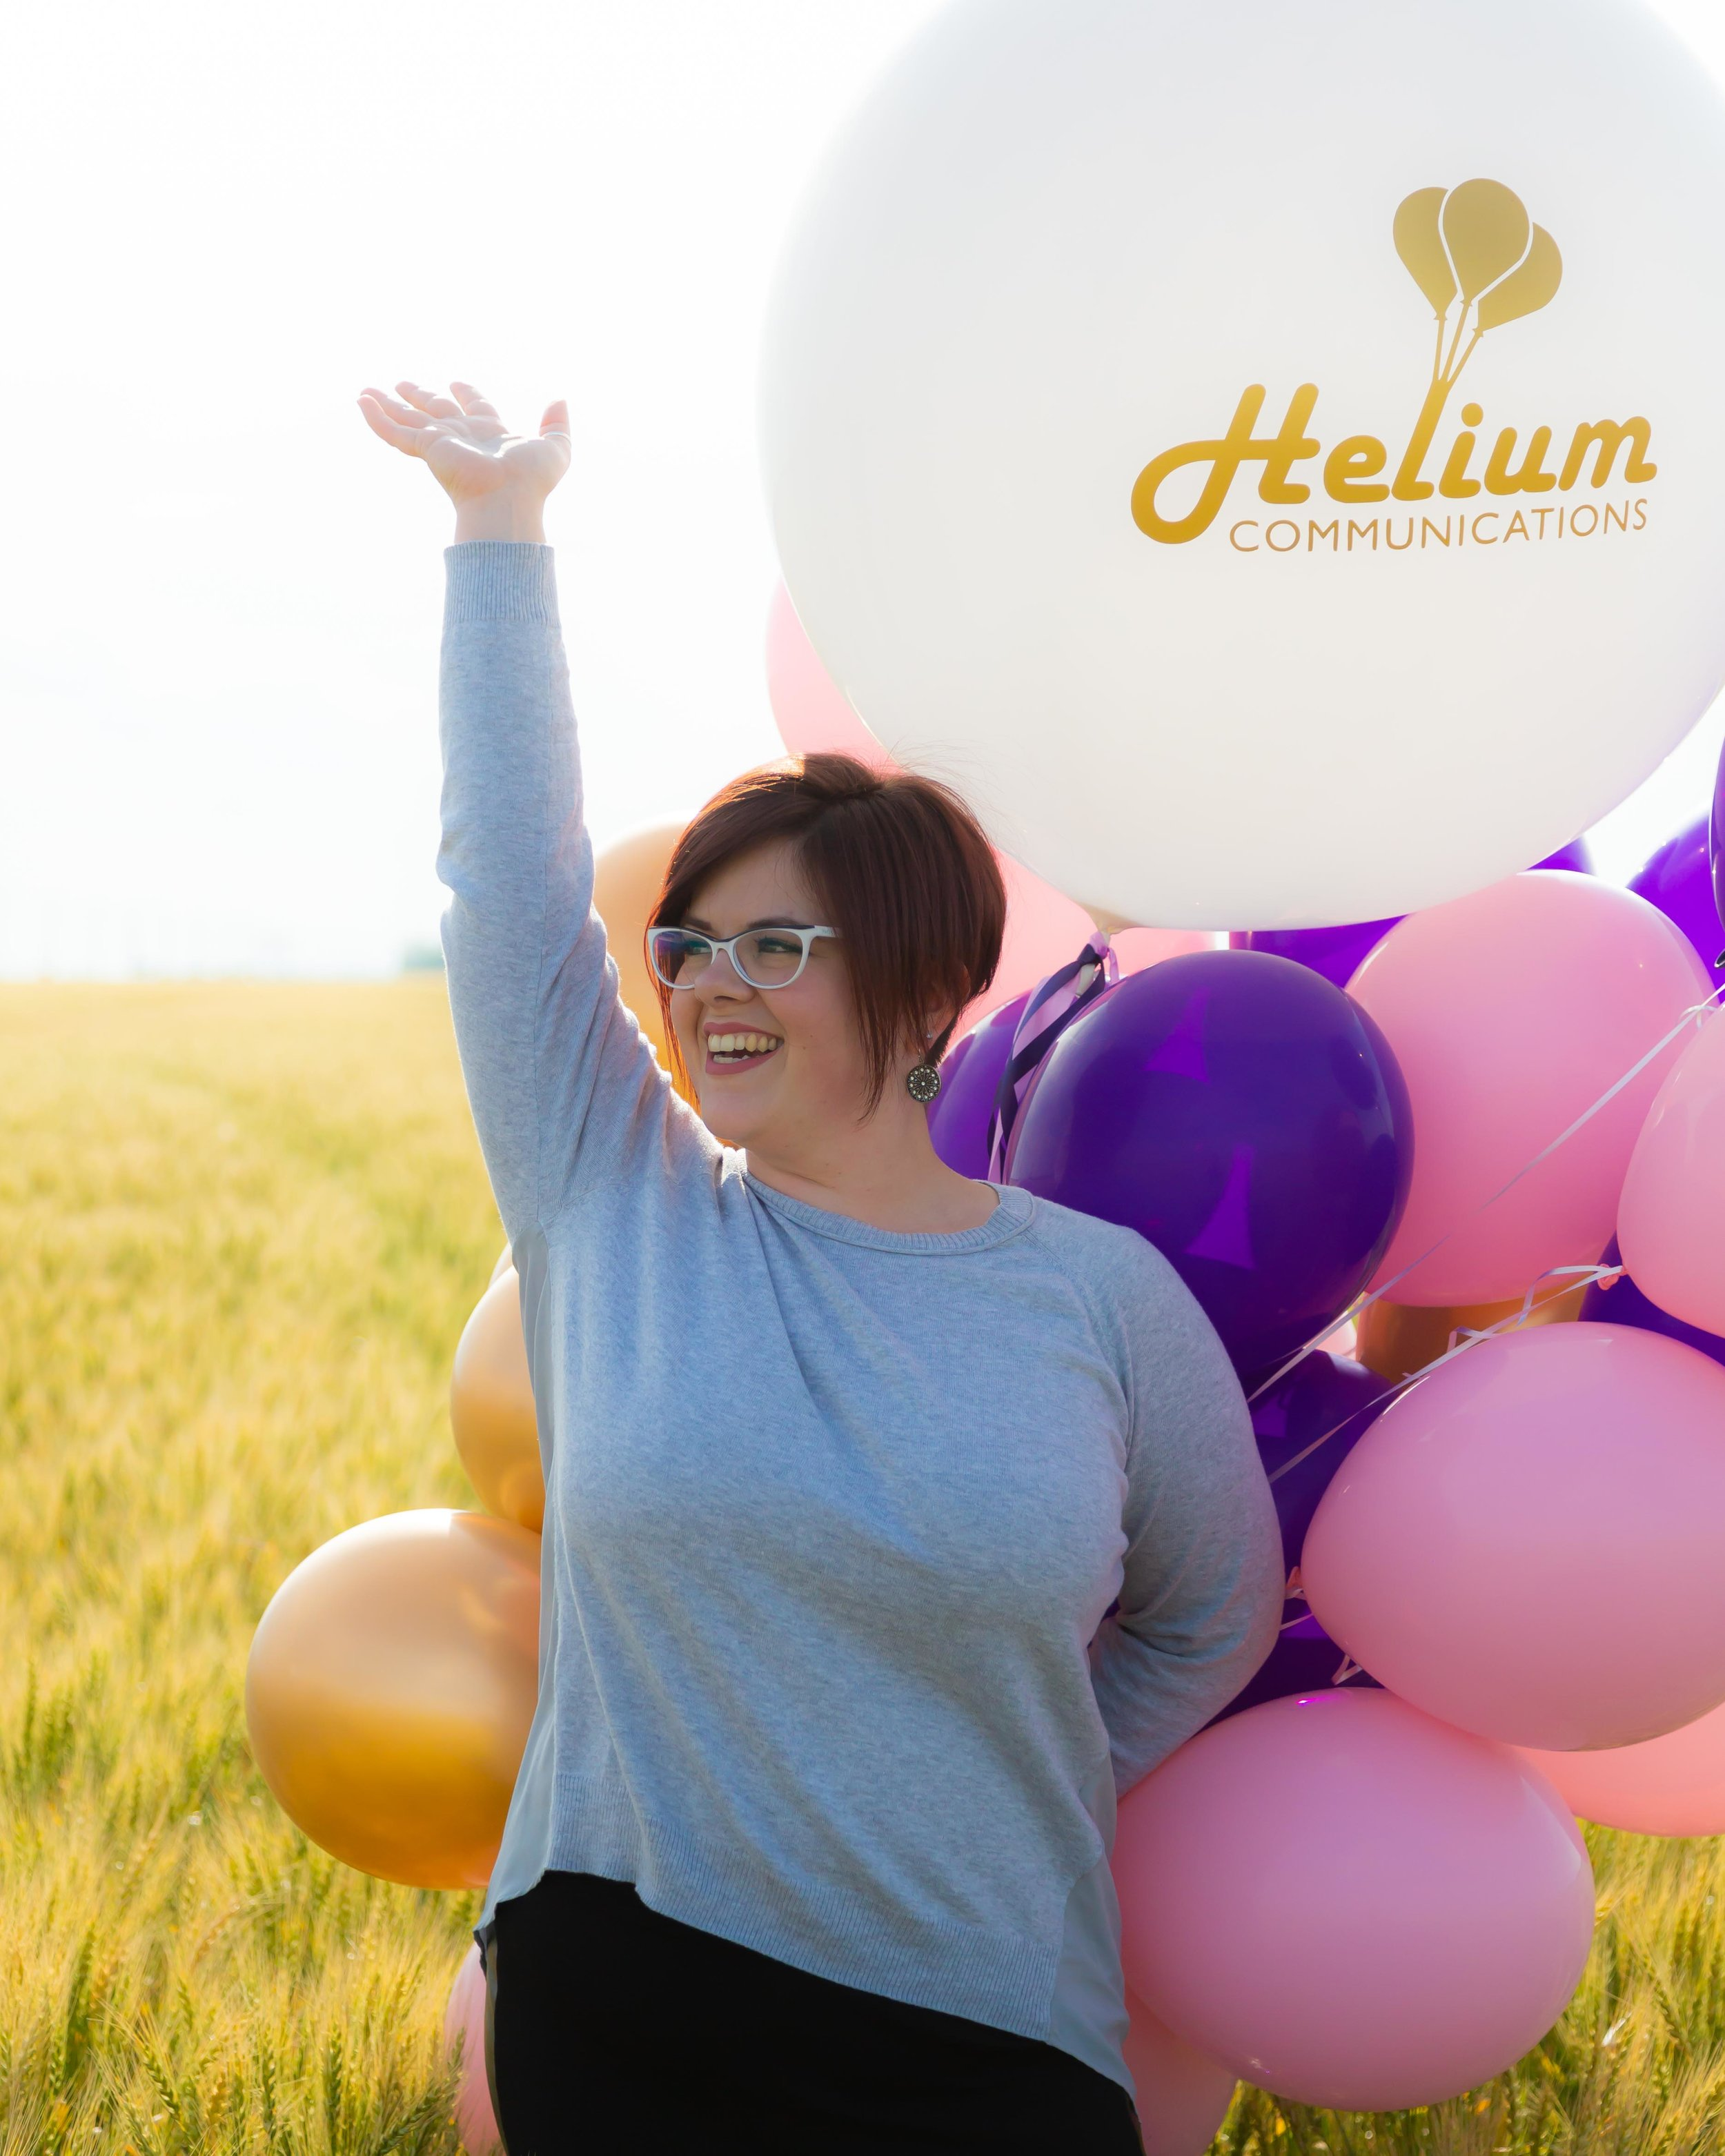 "Surprise! - Helium Communications is a one-woman shop! Did all the ""we"" talk fool you?But don't worry, I have a contact list stacked with other fun and talented people who do great work. From graphic designers to web developers, if your project needs more than just me, we really do have you covered."